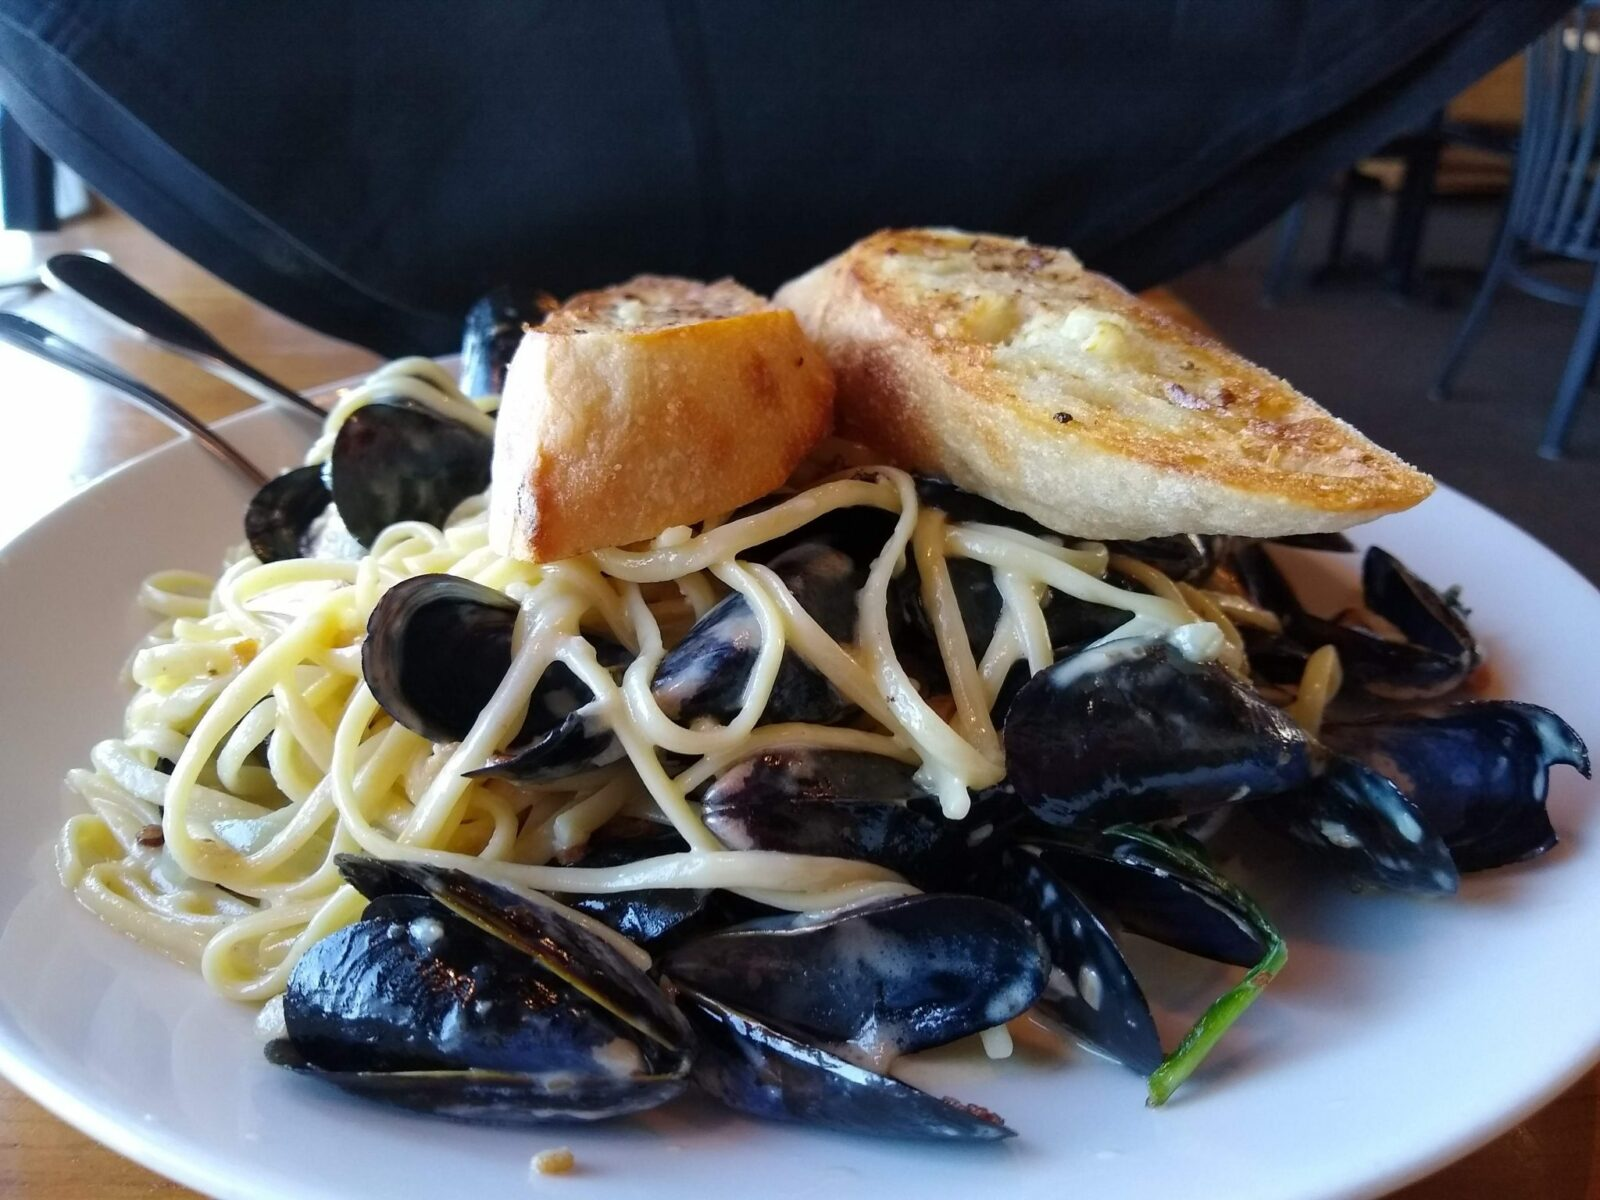 A plate of Penn Cove mussels with pasta and bread on top